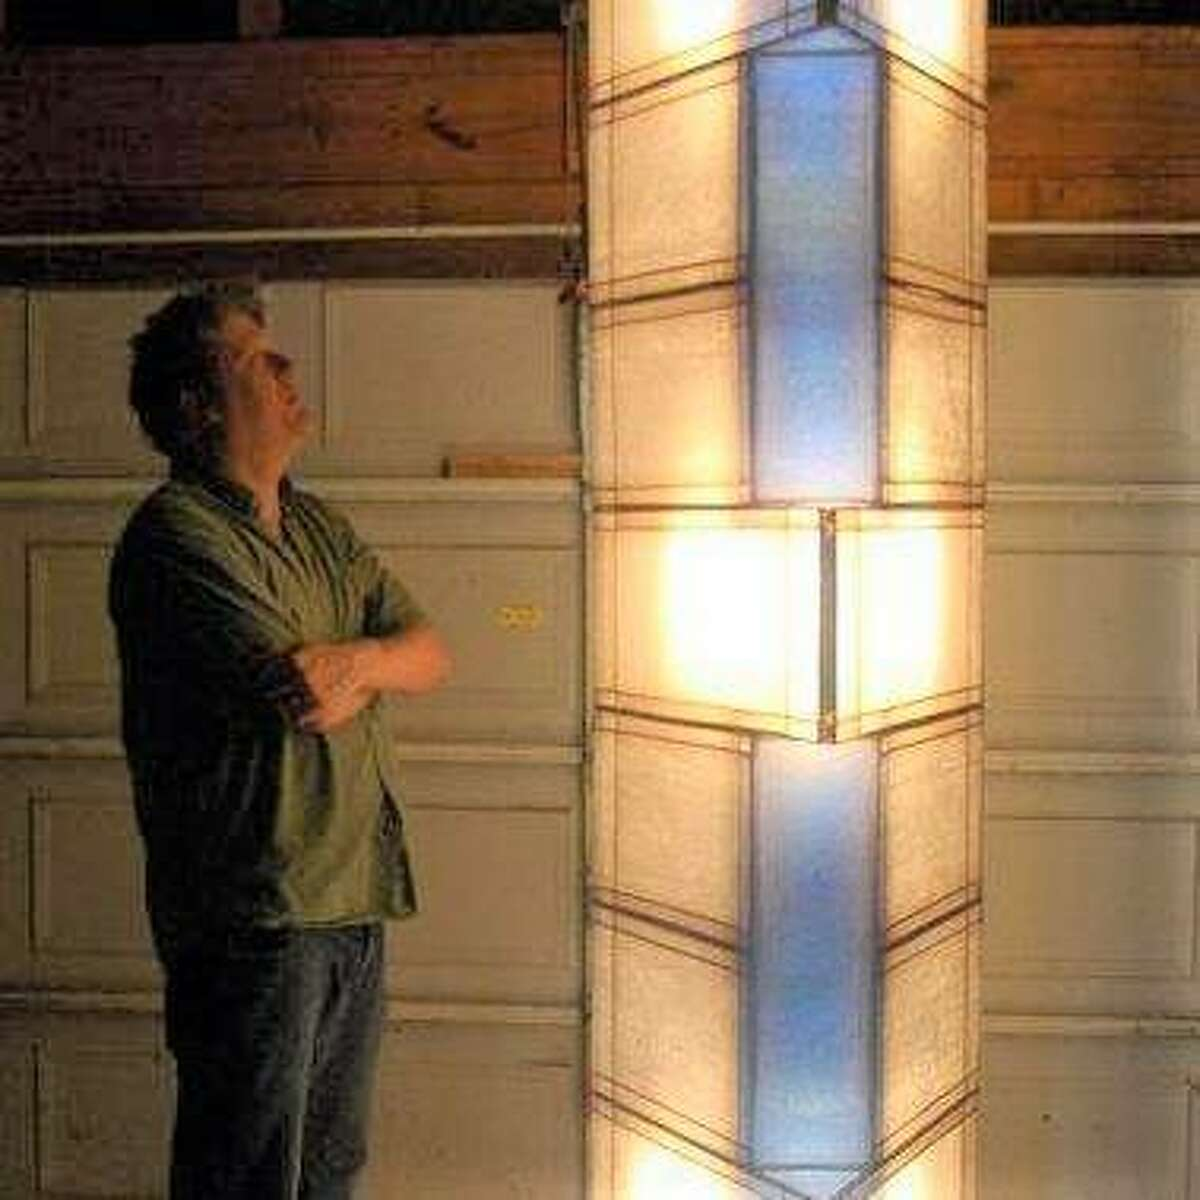 St. Louis artist Bob Hartzell gazes at one of his light sculpture pieces. His solo exhibit Satellites: The Forgotten Works of Bob Hartzell opens Saturday at Good Weather Gallery, Edwardsville.